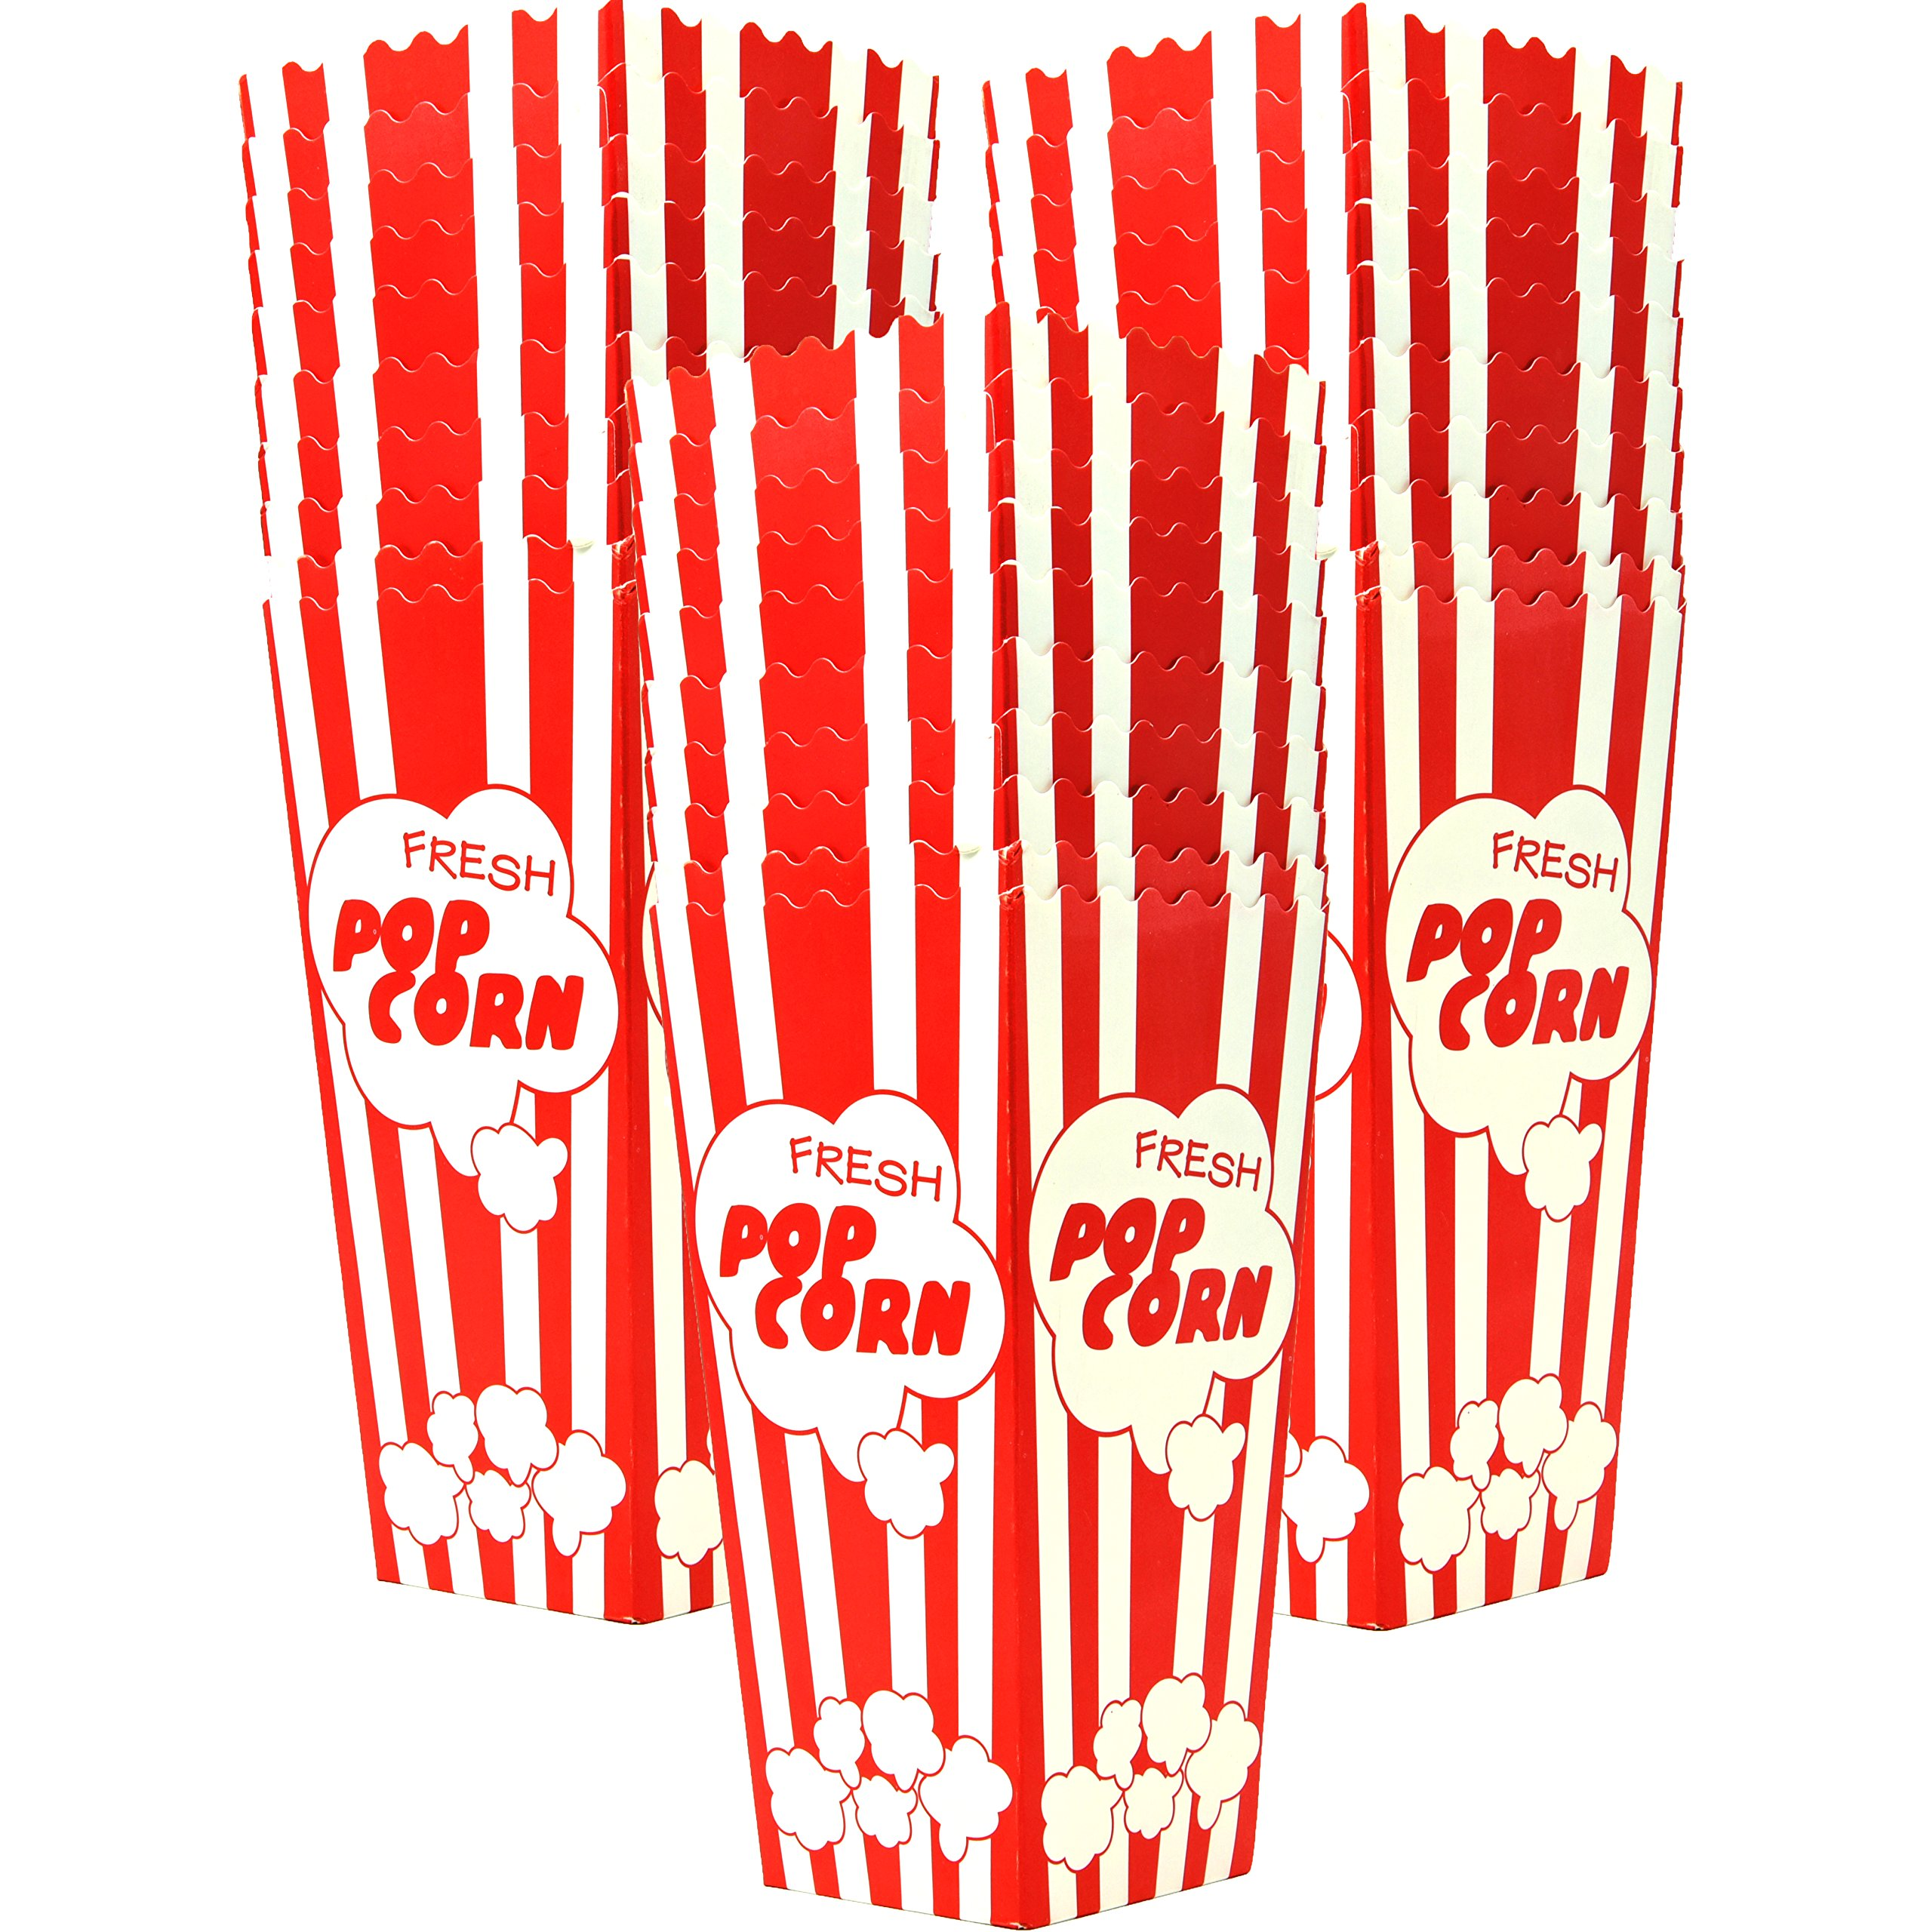 30 Popcorn Boxes 7.75 Inches Tall & Holds 46 Oz. Old Fashion Vintage Retro Design Red & White Colored Nostalgic Carnival Stripes like Popcorn Bags & Popcorn Tubs [other quantities available] Salbree by Salbree